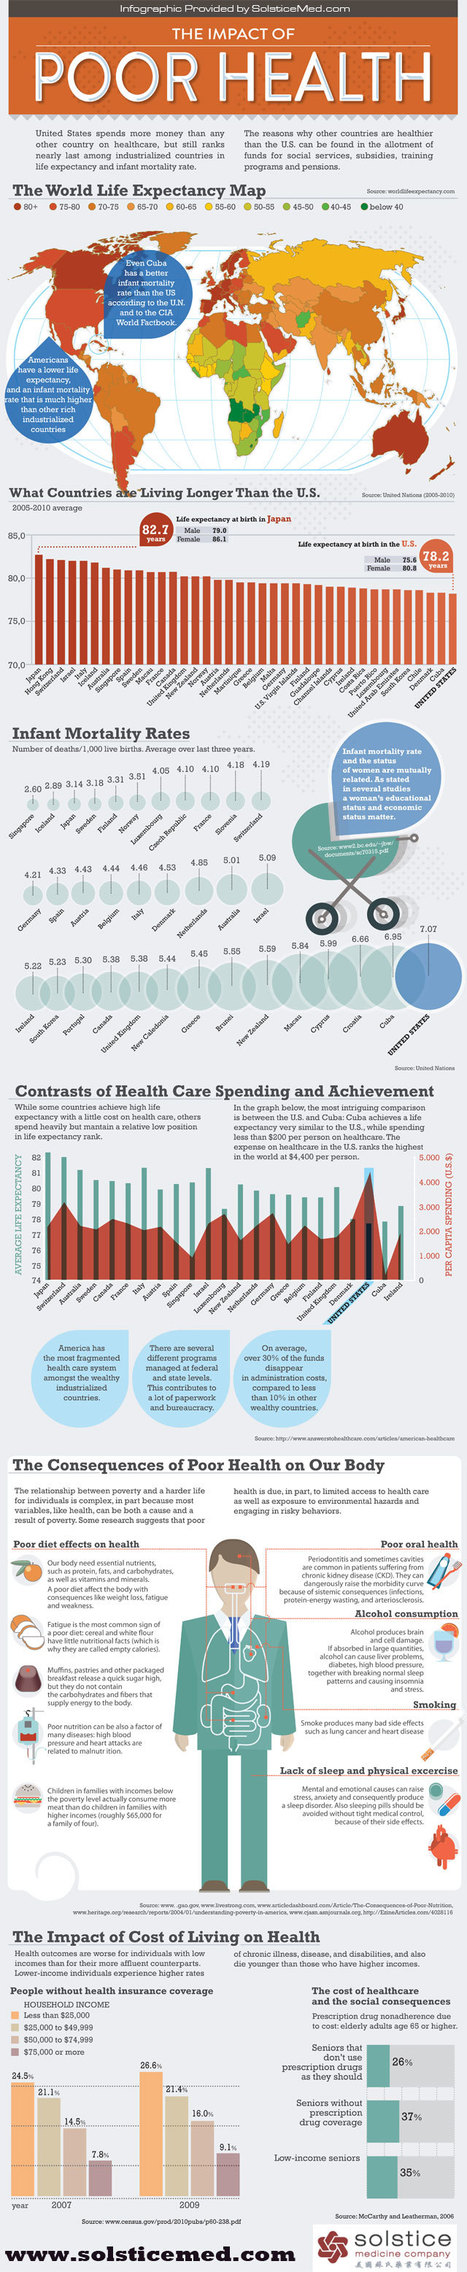 Poor Health in America Infographic | Development geography | Scoop.it